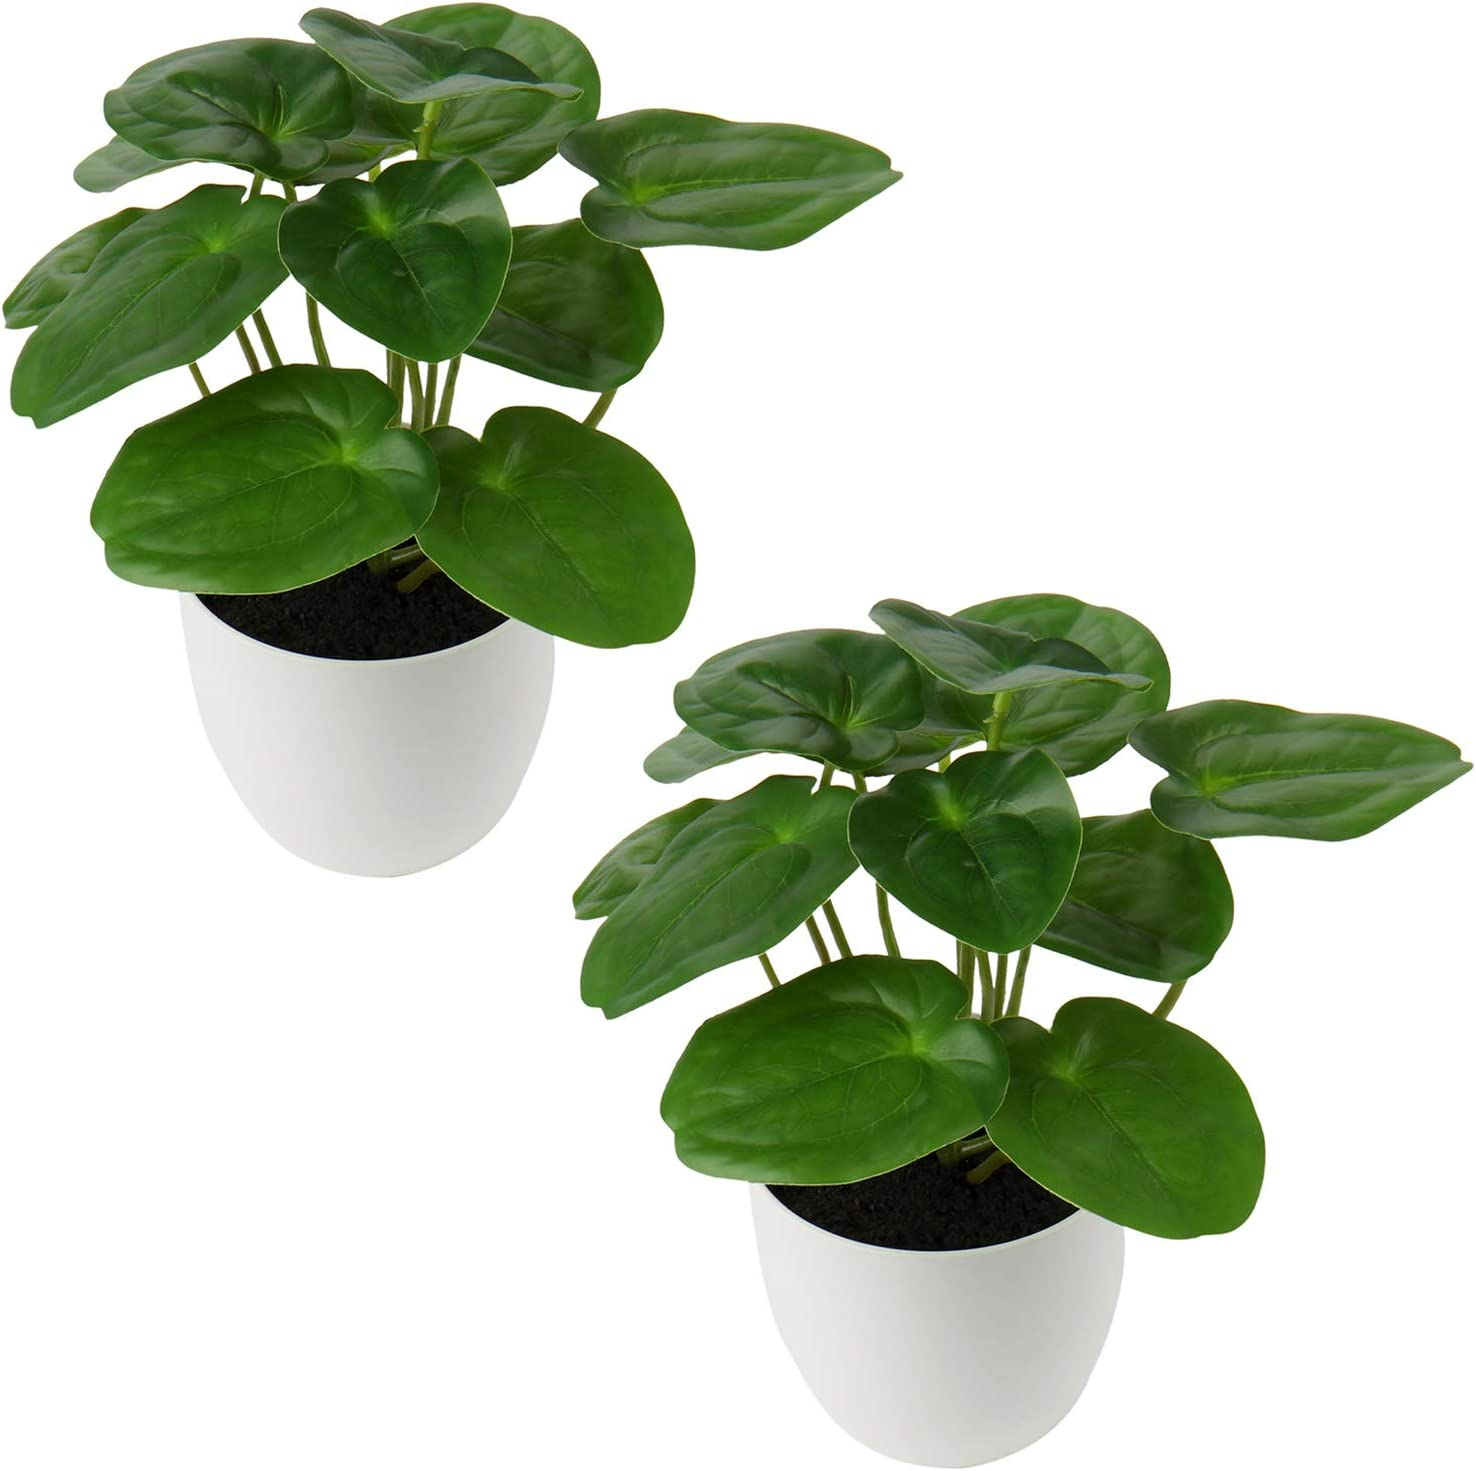 20 Pcs Artificial Potted Plants Mini Fake Plants in Plastic Pot Small  Greenery Faux Plants Indoor for Home Office Desk Room Table Bathroom  Bedroom ...